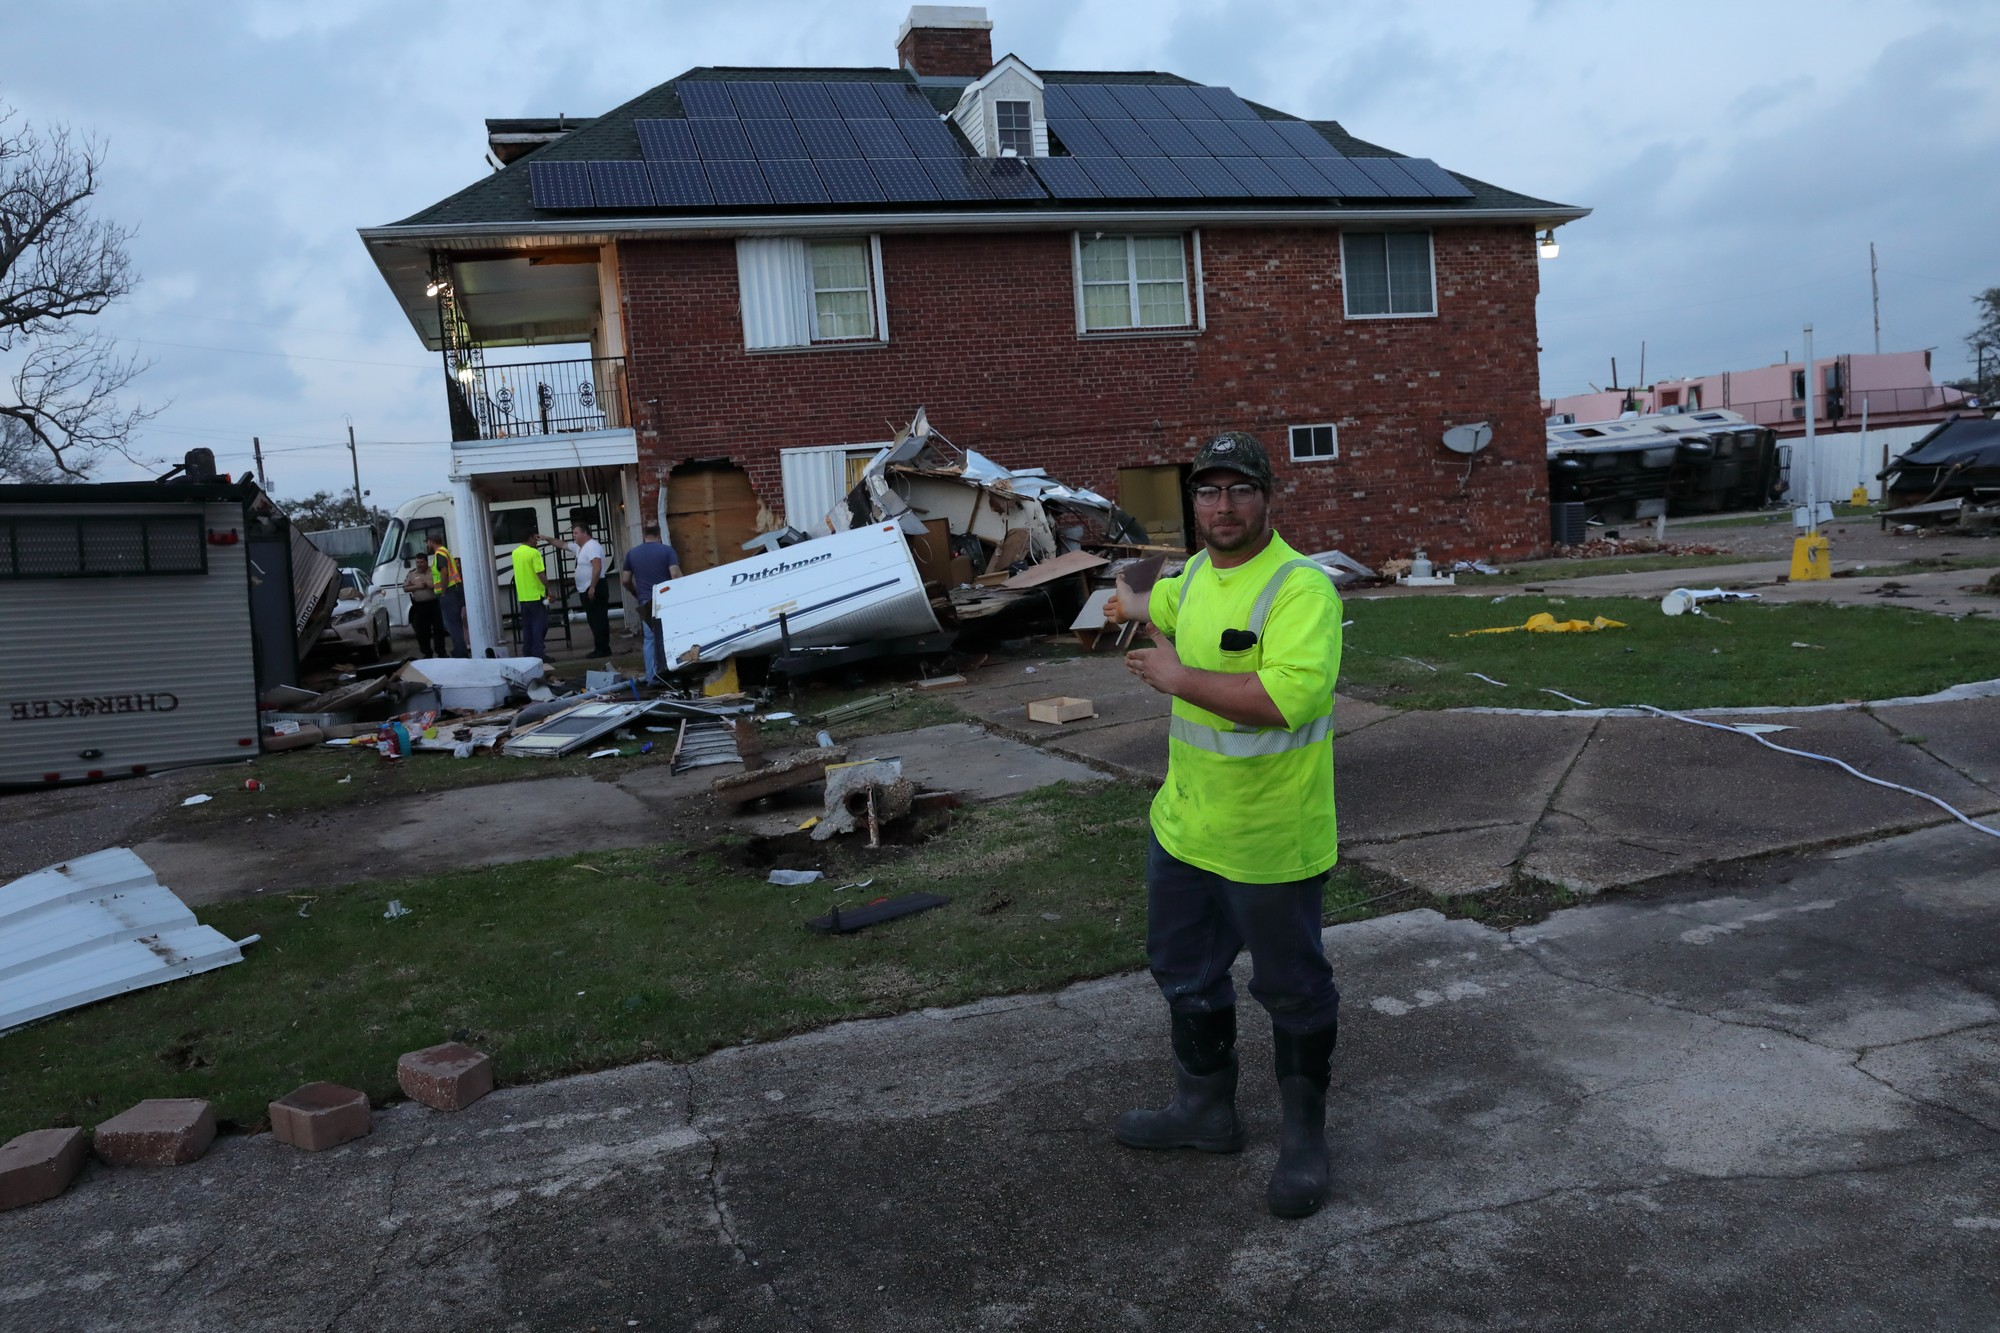 Christian+Nibert%2C+Hayward+Baker+equipment+operator%2C+stands+where+his+trailer%2C+now+behind+him+due+to+an+EF2+tornado%2C+once+stood+at+Parc+D%27+Orleans+in+East+New+Orleans%2C+Louisiana%2C+Feb.+7%2C+2017.+Nibert+and+his+neighbors+worked+together+to+help+one+another+recover+from+the+catastrophe.+Photo+credit%3A+Osama+Ayyad